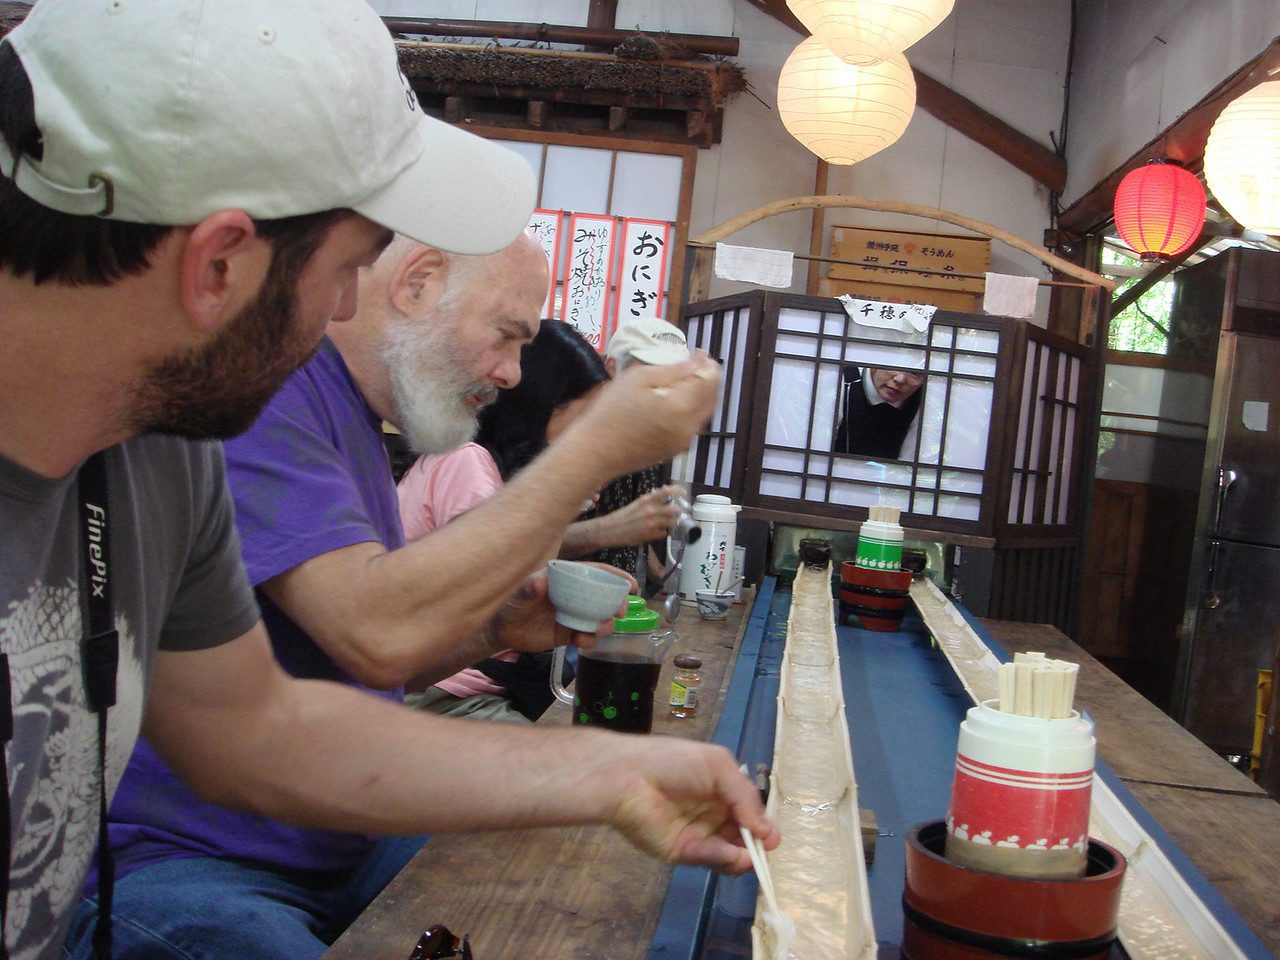 Proper technique: Fresh-plucked noodles are dipped into tsuyu sauce before eating. Delicious! (Note the noodle-maker behind the screen, checking to make sure his customers are happy.)